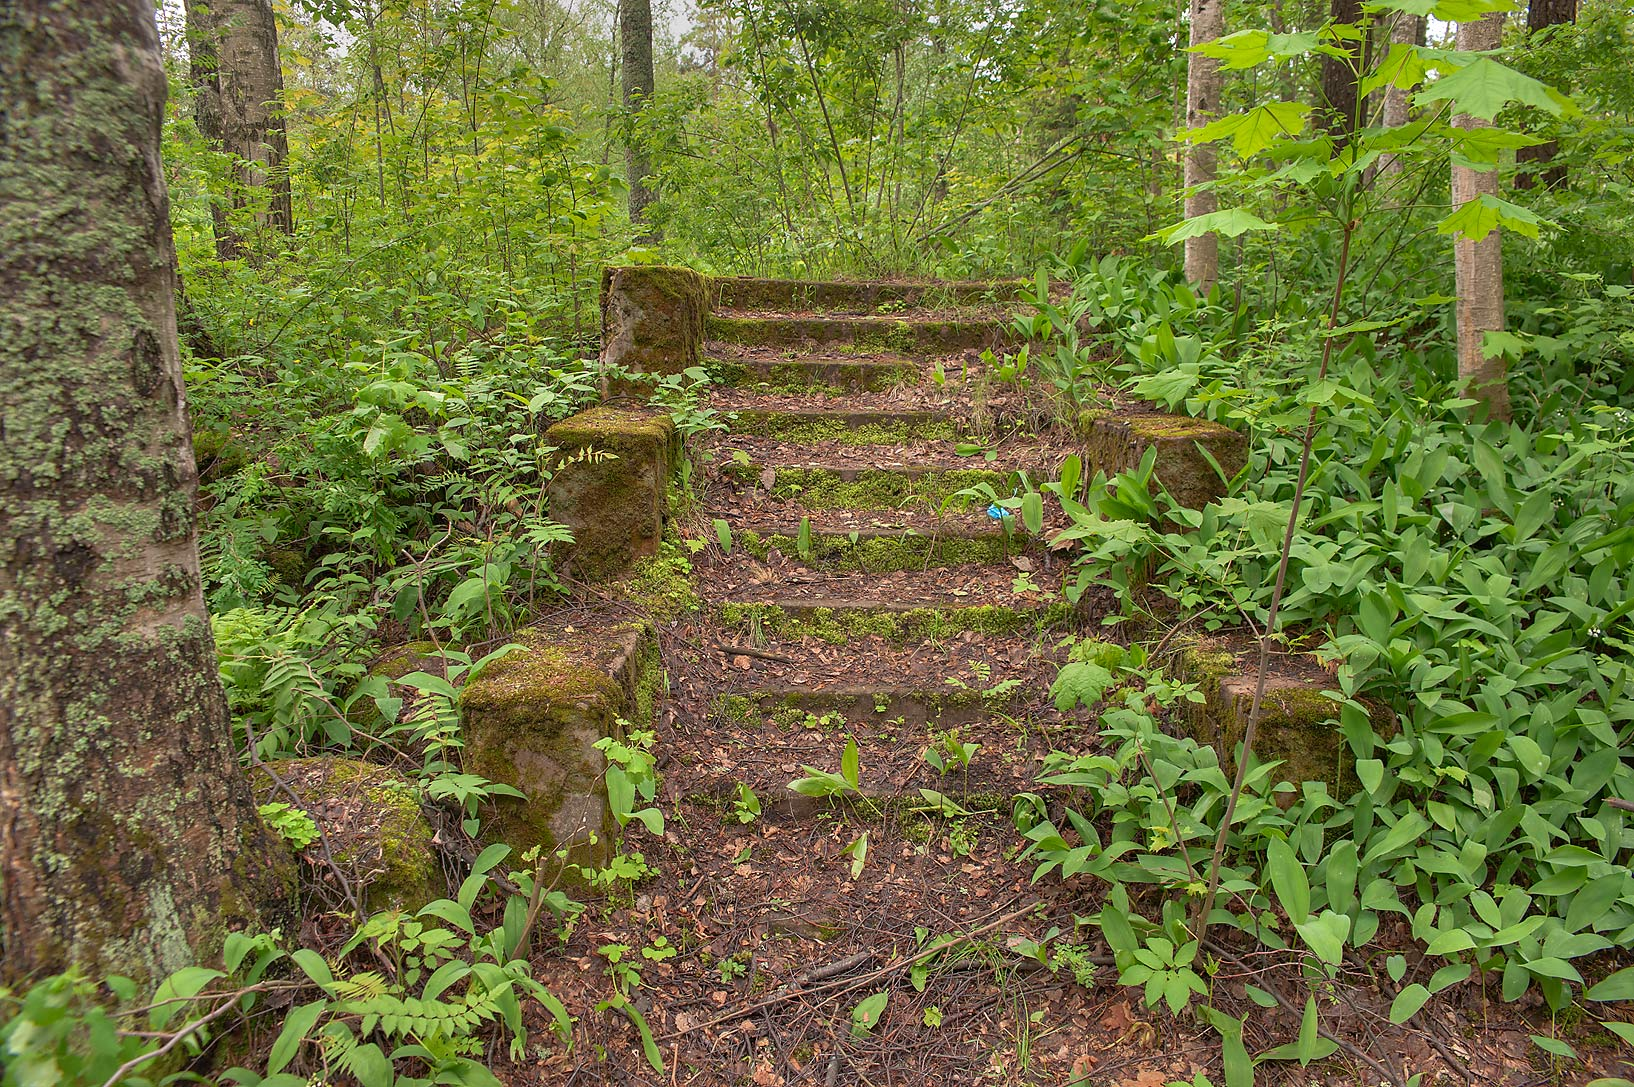 Old stone steps near Primorsky Highway. Solnechnoe, suburb of St.Petersburg, Russia